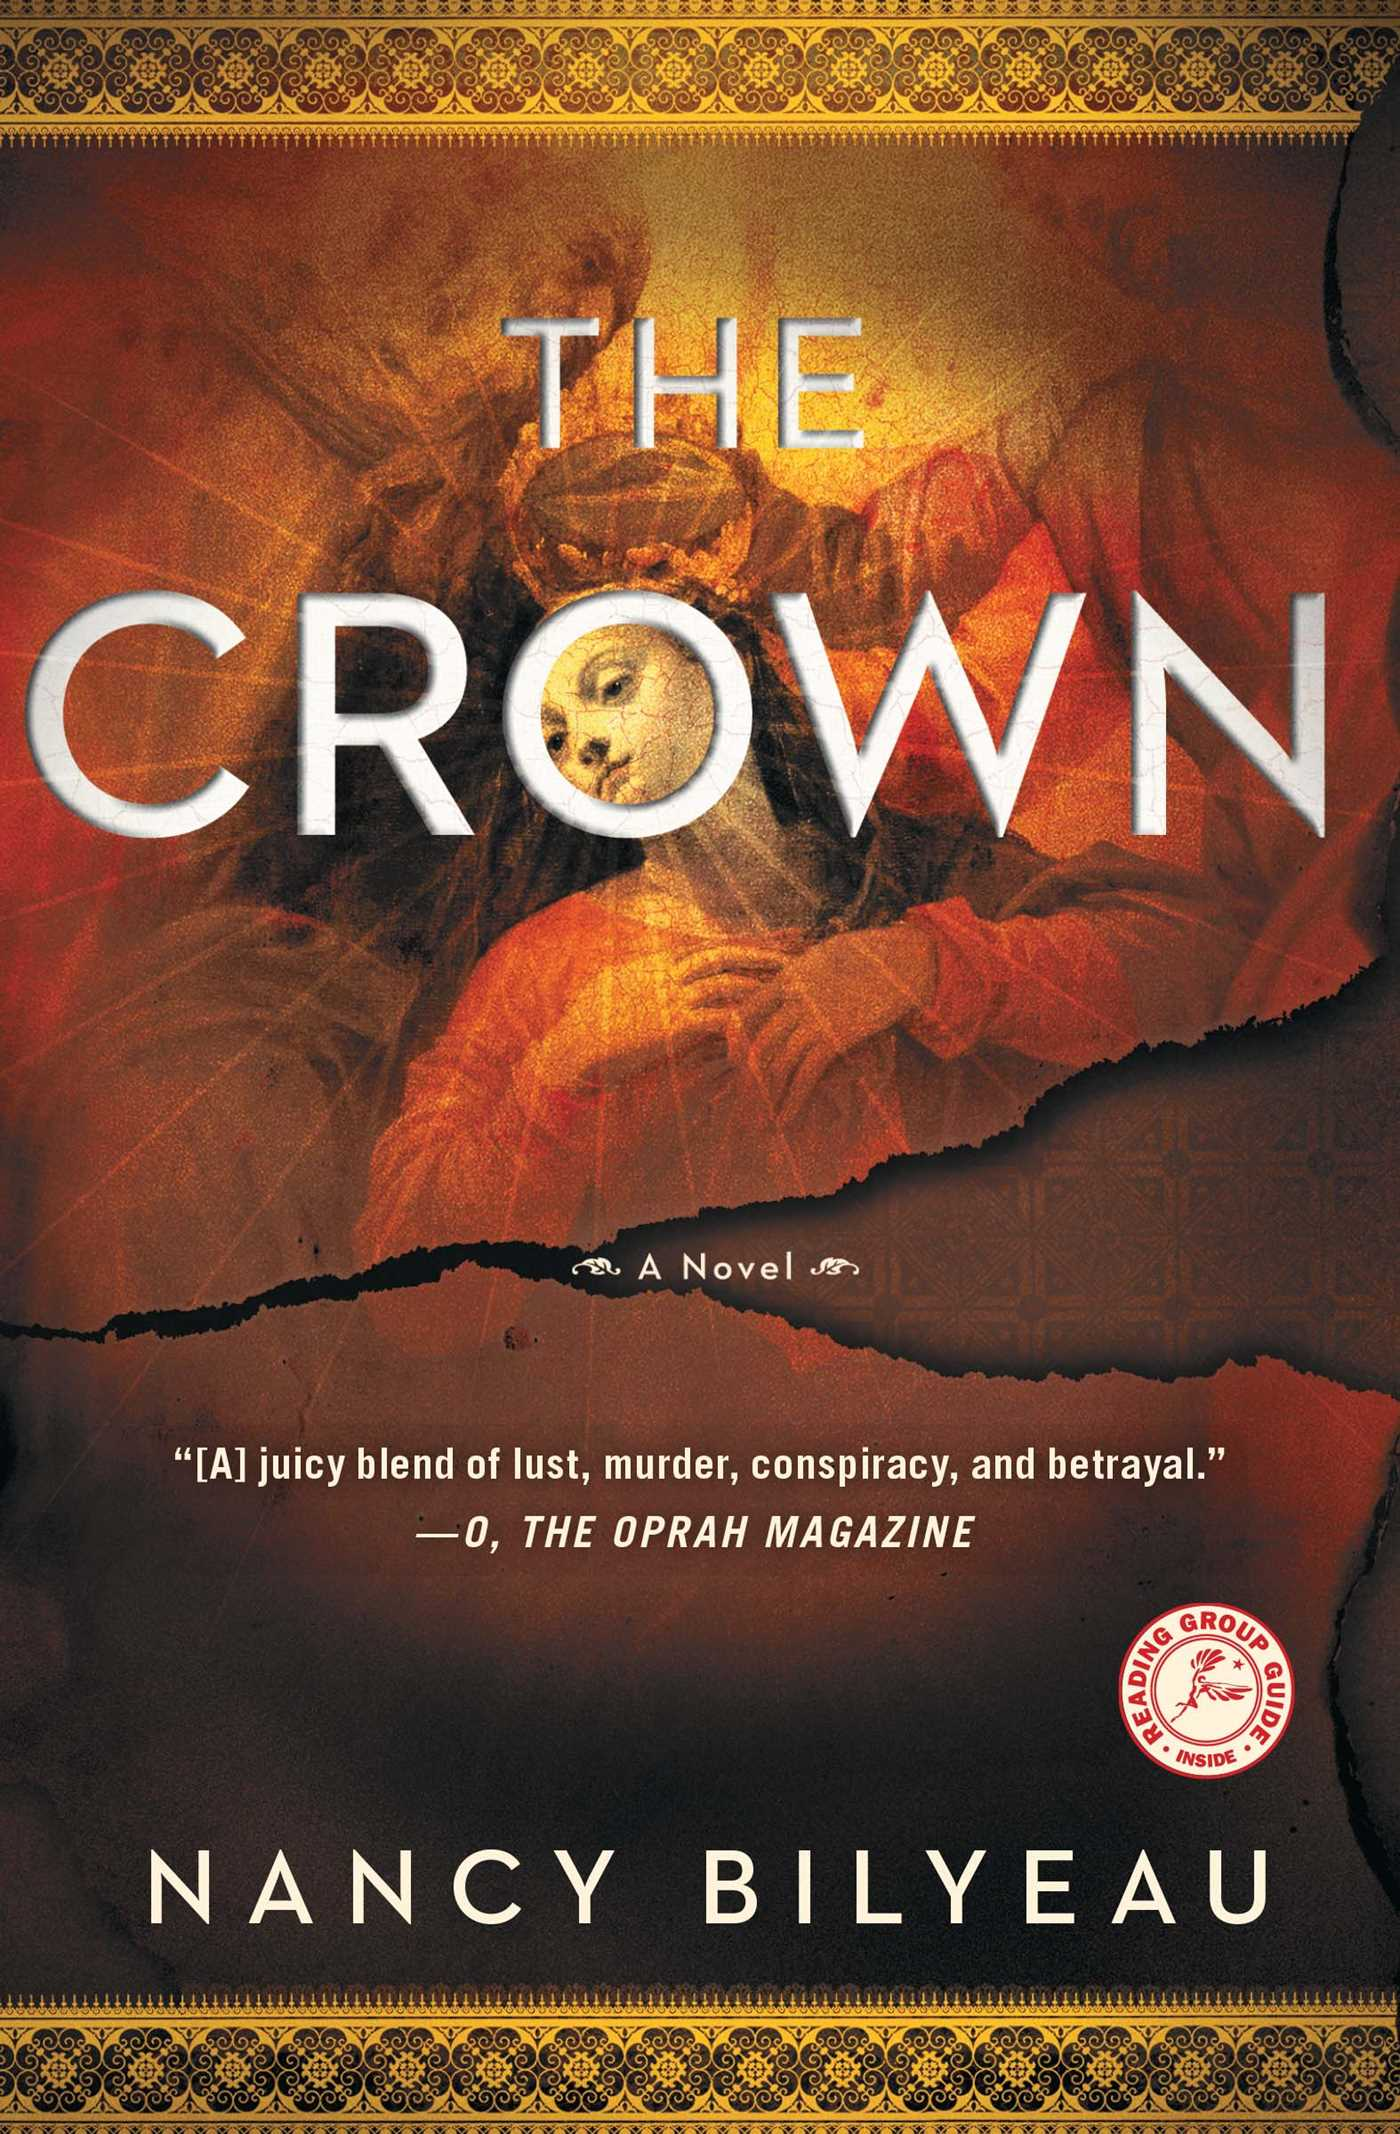 The-crown-9781451626872_hr